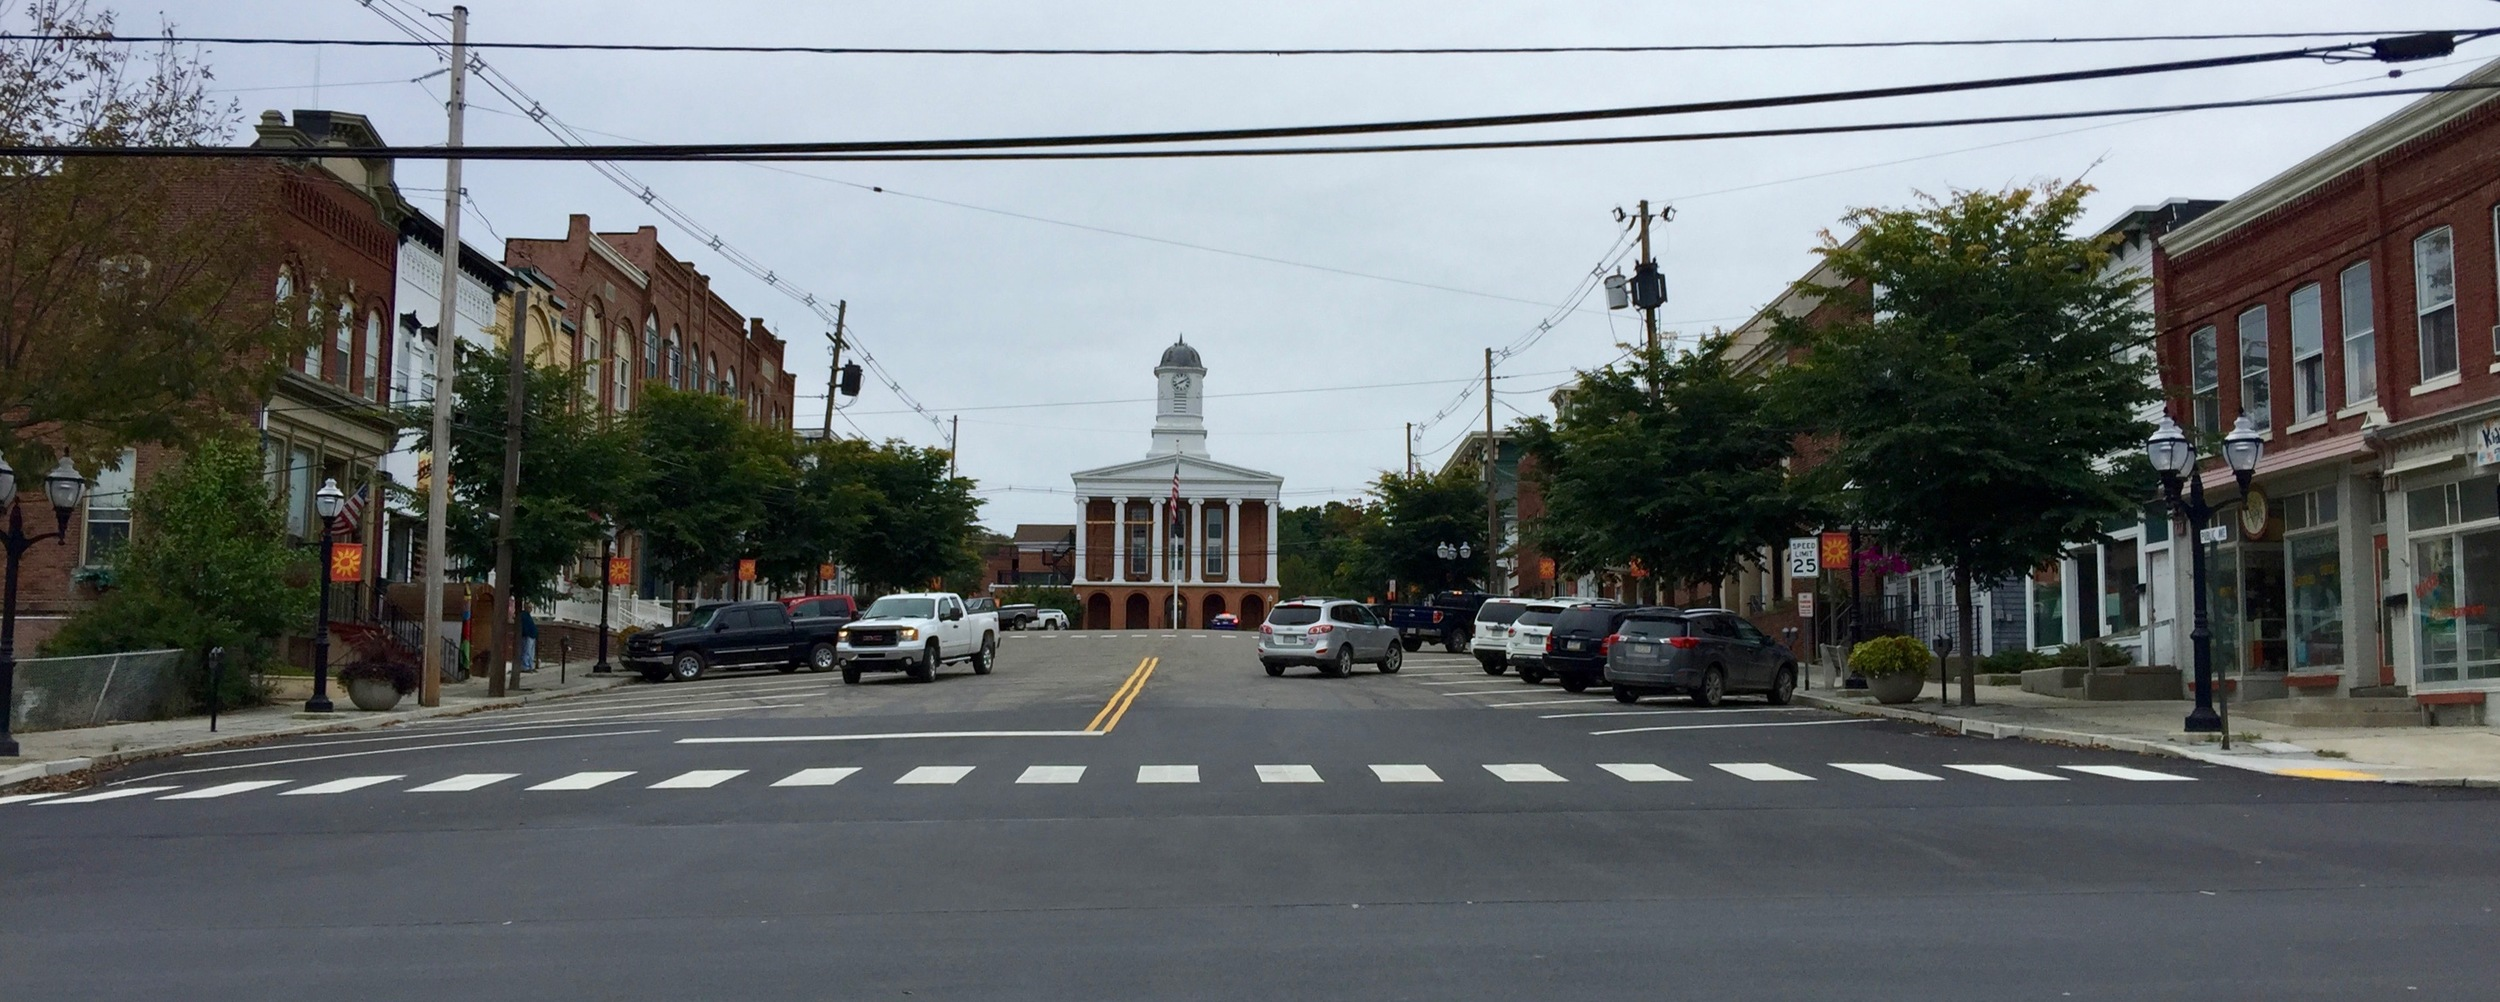 Montrose looking north toward the Susquehanna County Courthouse